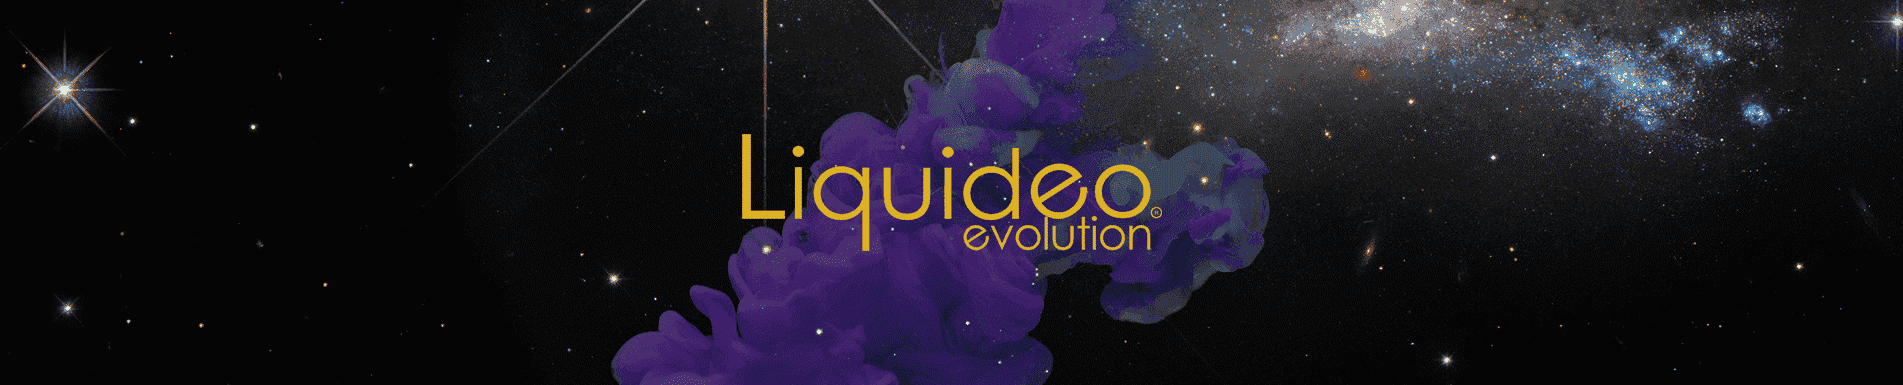 liquideo eliquide evolution